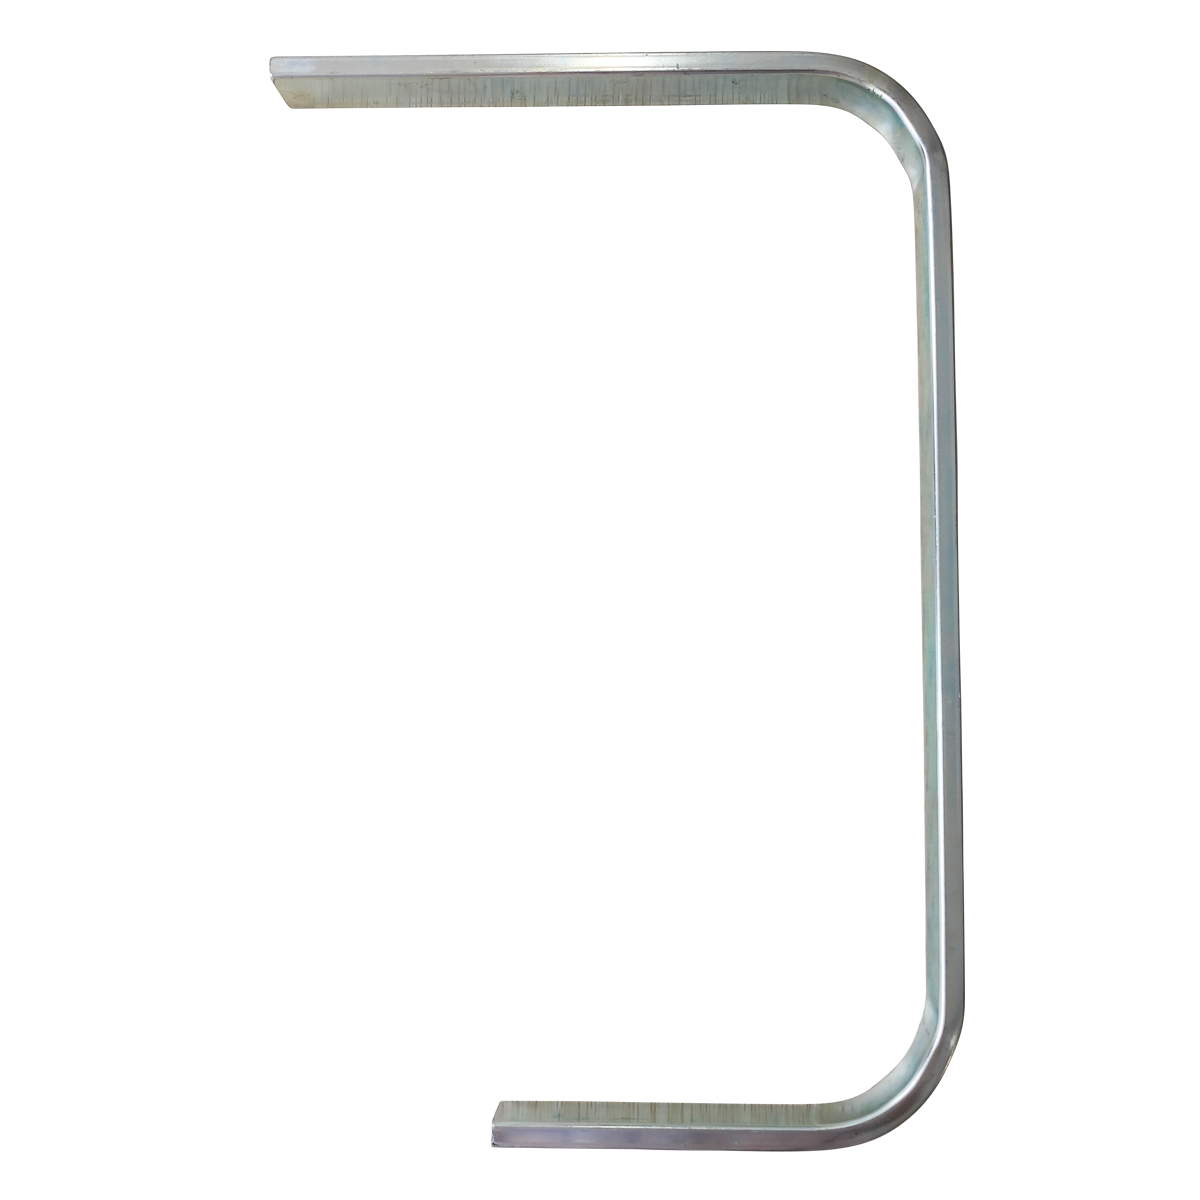 SUV Vehicle Rear Seat pipe